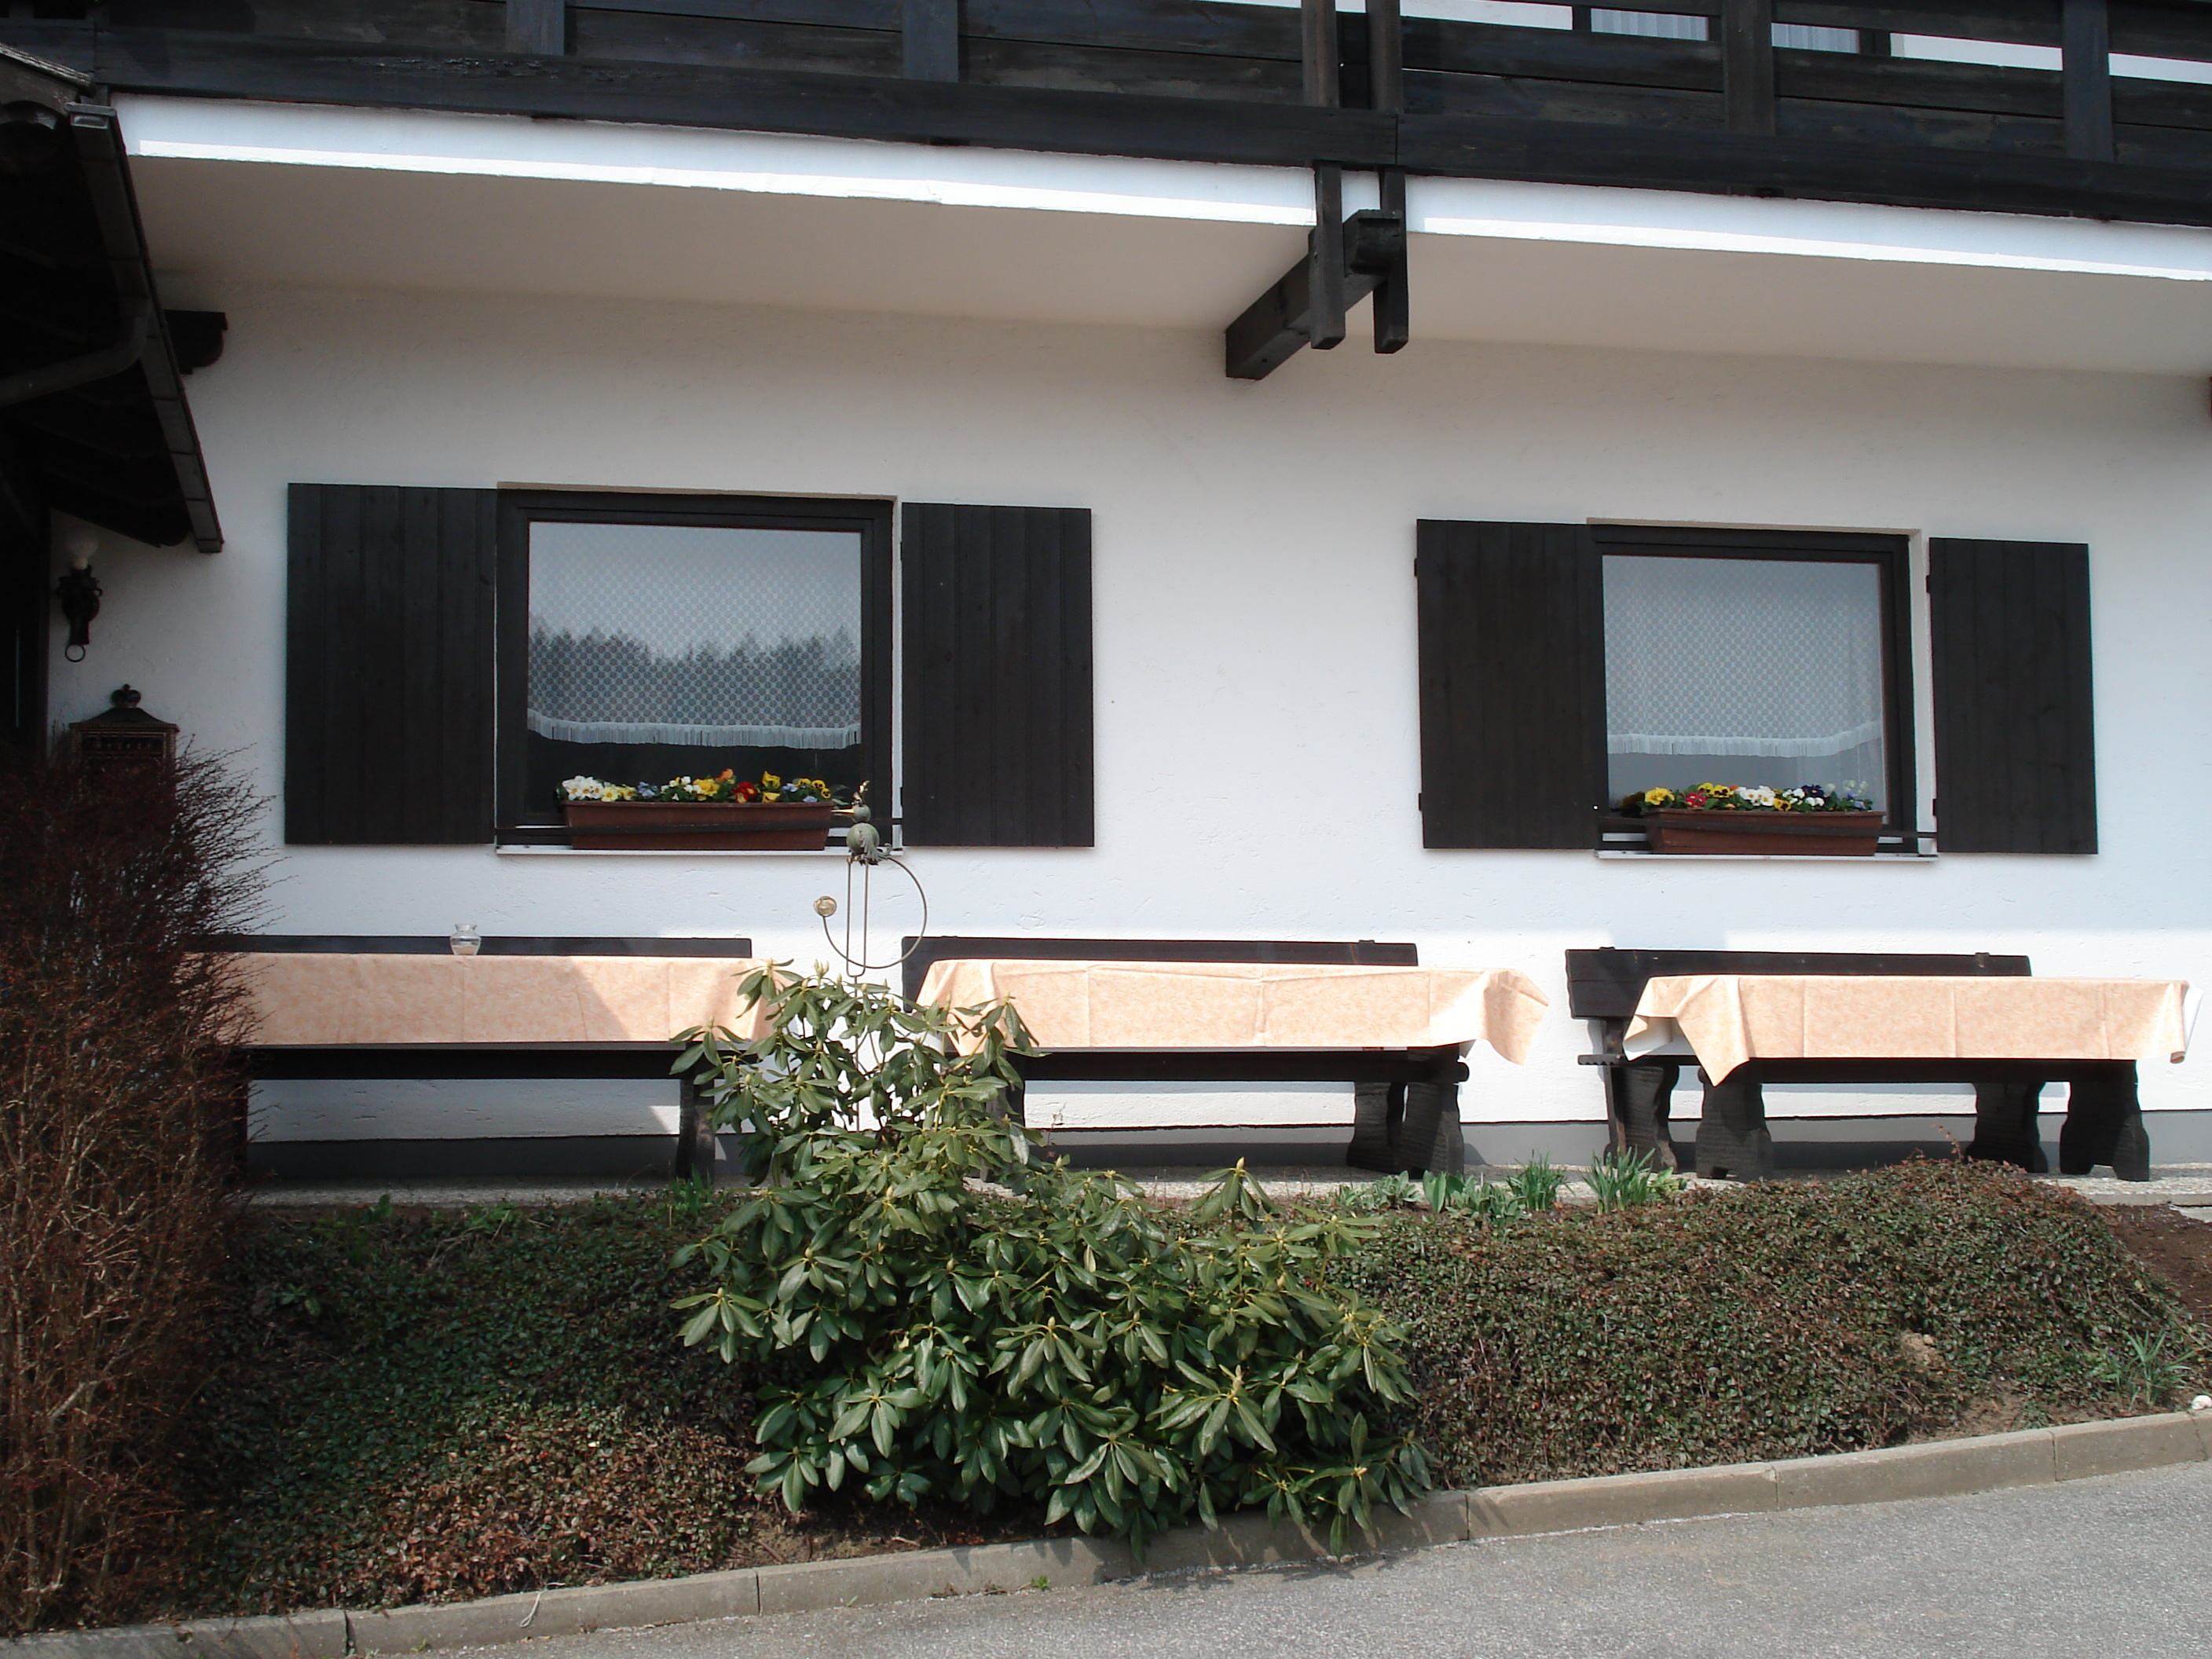 terrasse vor dem haus pension haus inge in zwiesel. Black Bedroom Furniture Sets. Home Design Ideas